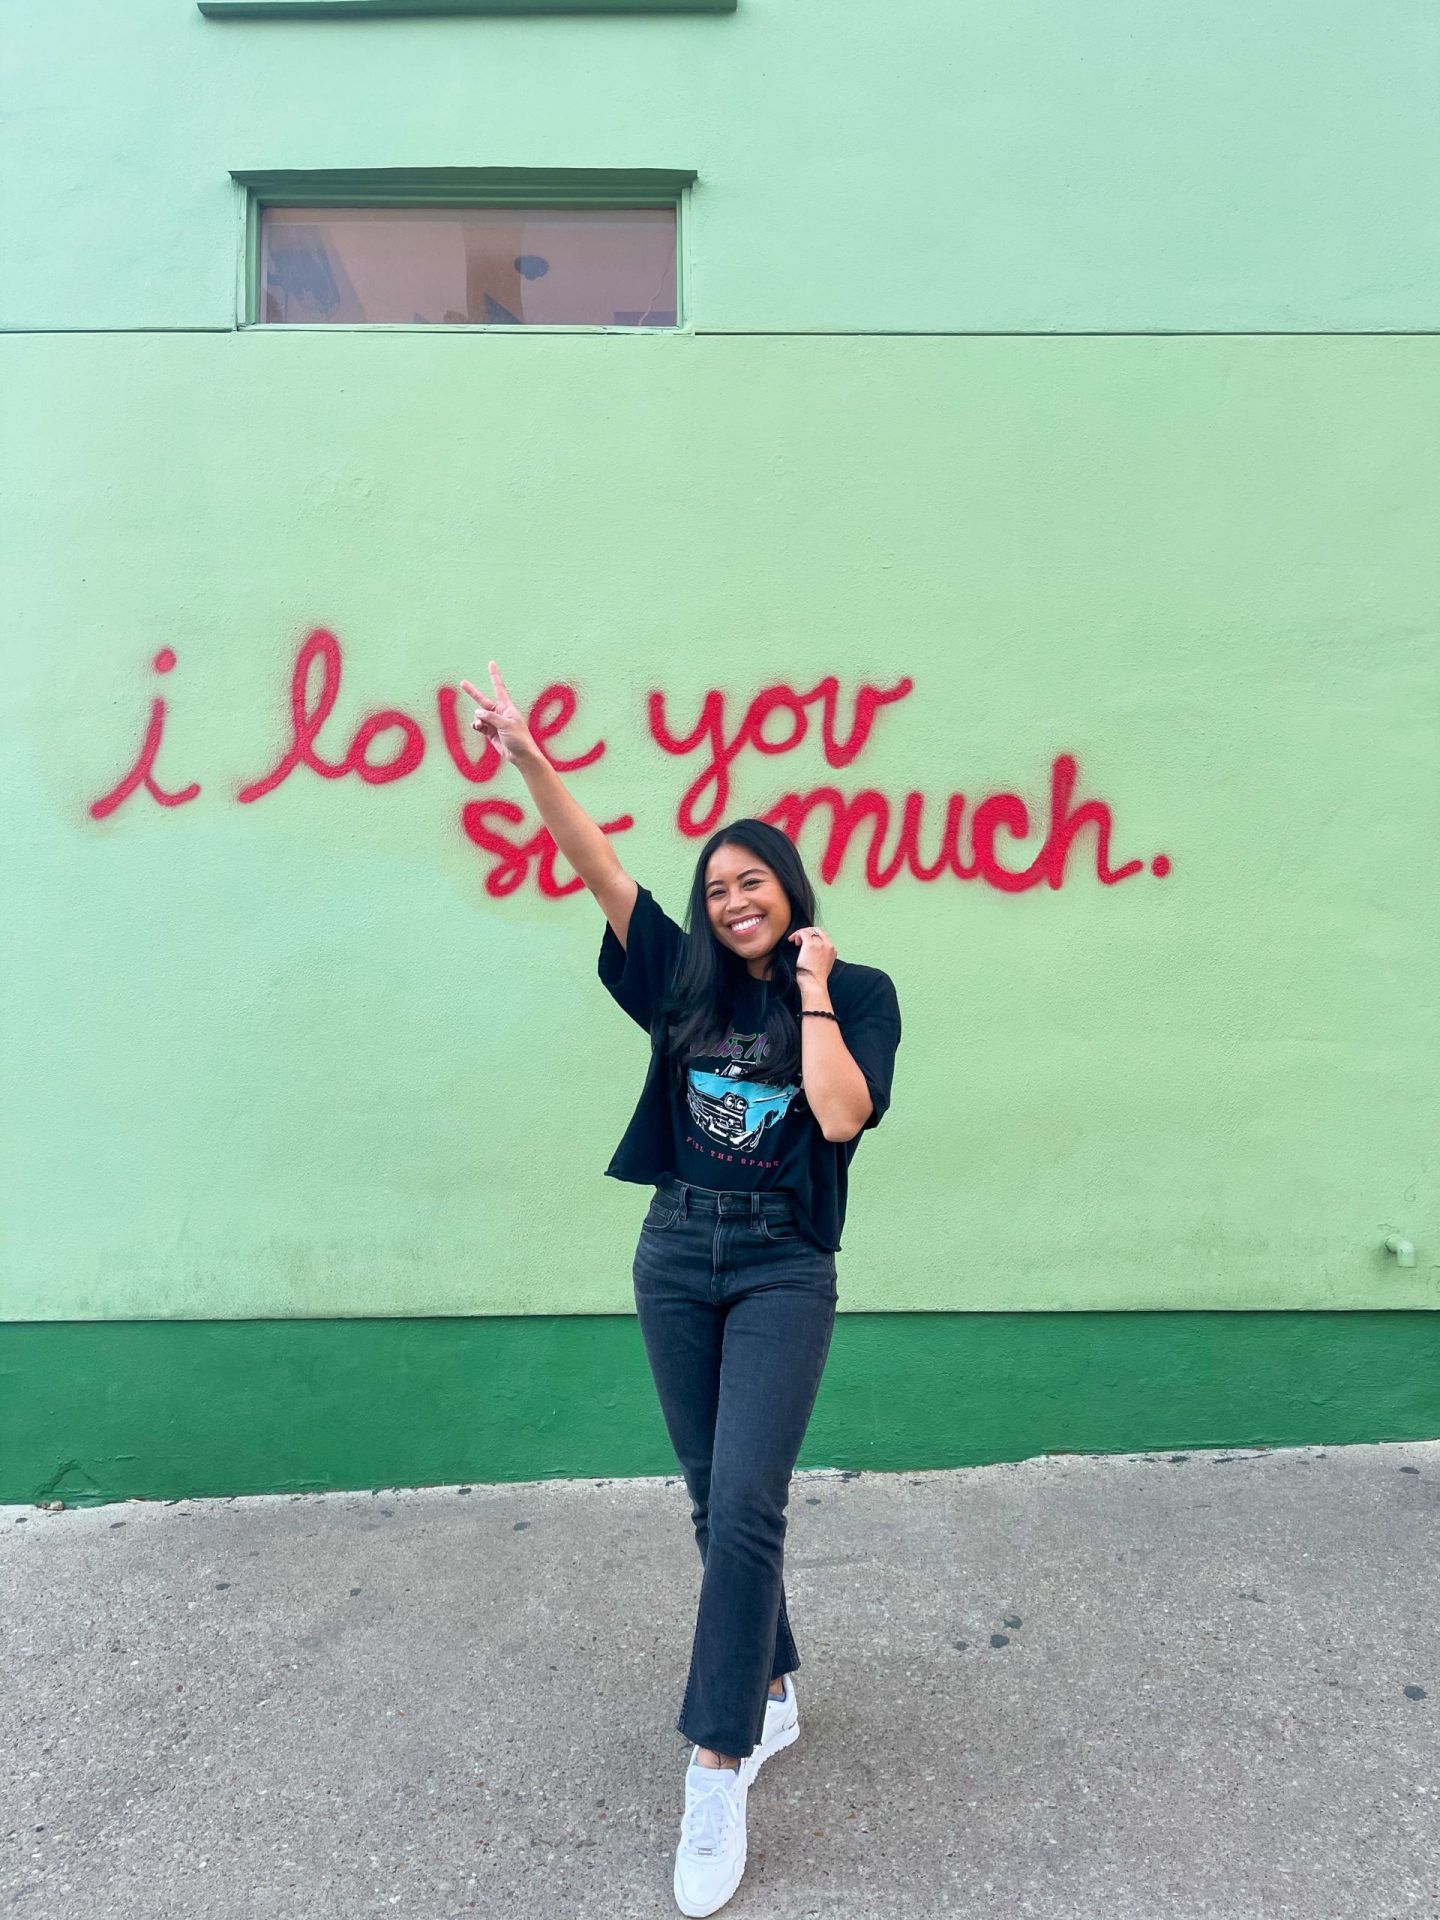 I love you so much mural - South Congress - Austin Texas - most Instagram worthy spots in Austin Texas – best Instagram spots in Austin – places to see in Austin – things to see in Austin – Austin photo spots – places to take graduation pictures in Austin – image from www.emmasedition.com – copyright @emmasedition